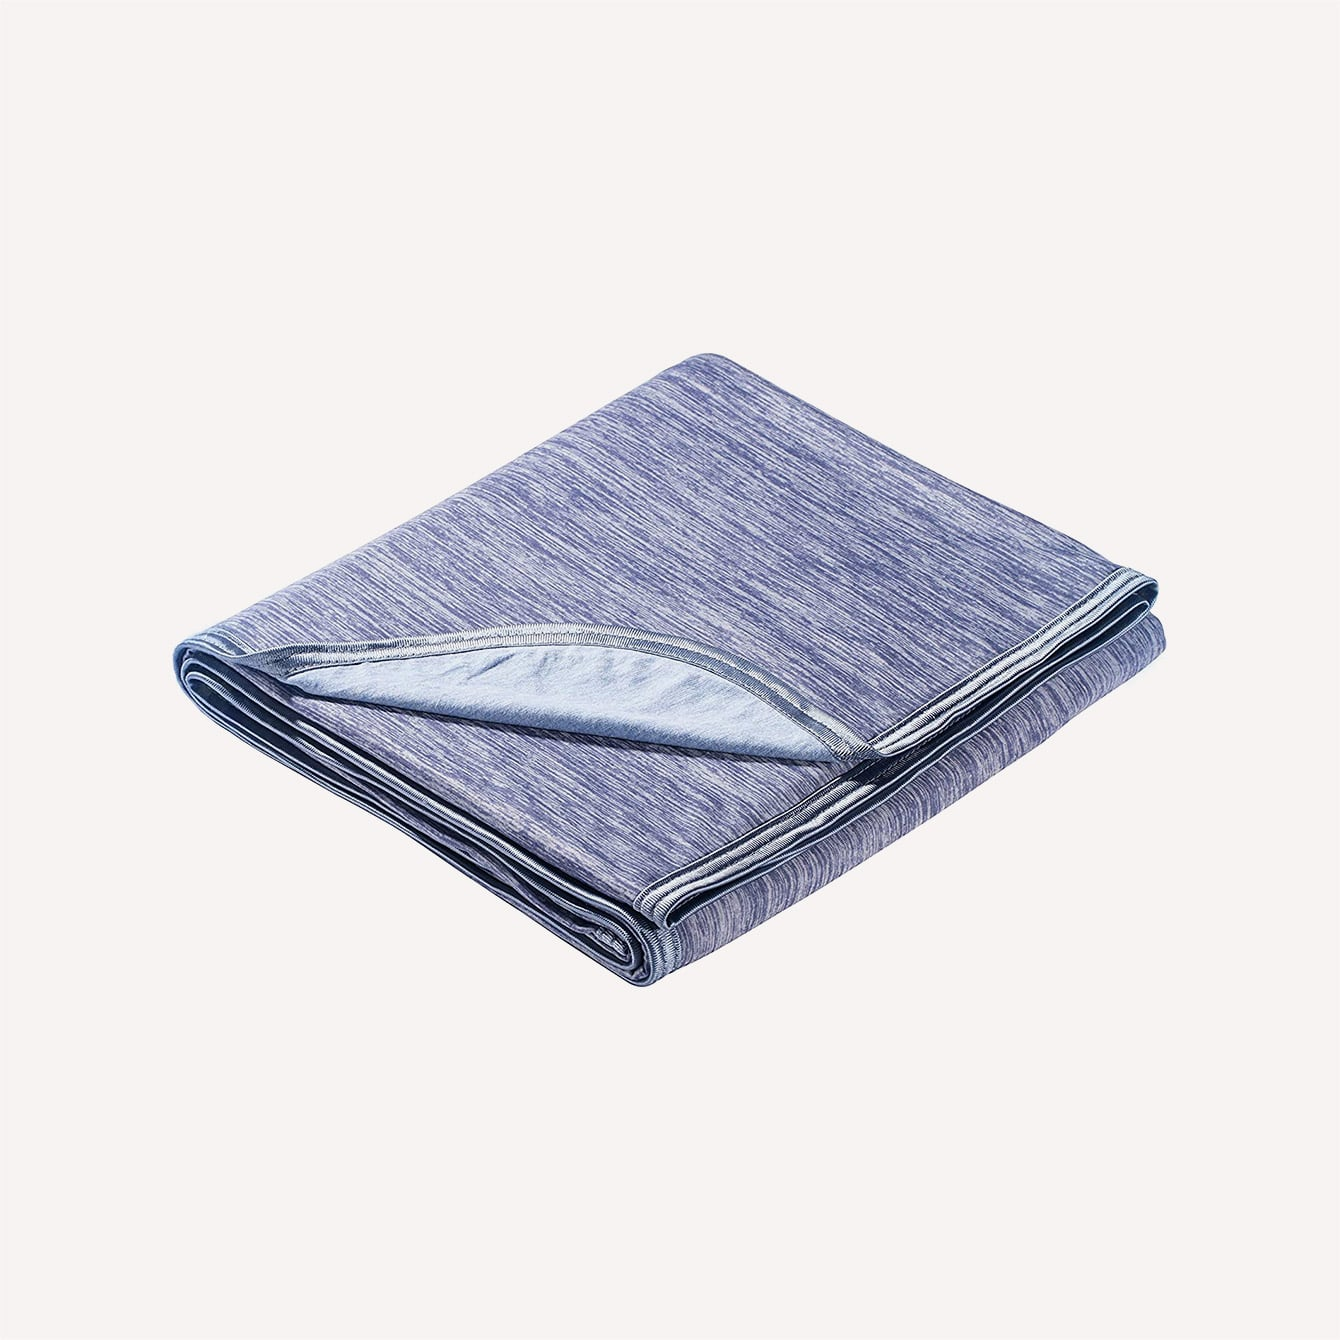 Elegear Self-Cooling Blanket, Cooling Blanket, Double-Sided Blanket with Japanese Q-Max 0.4 Cooling Fibres, Absorbs Body Heat, Cuddly